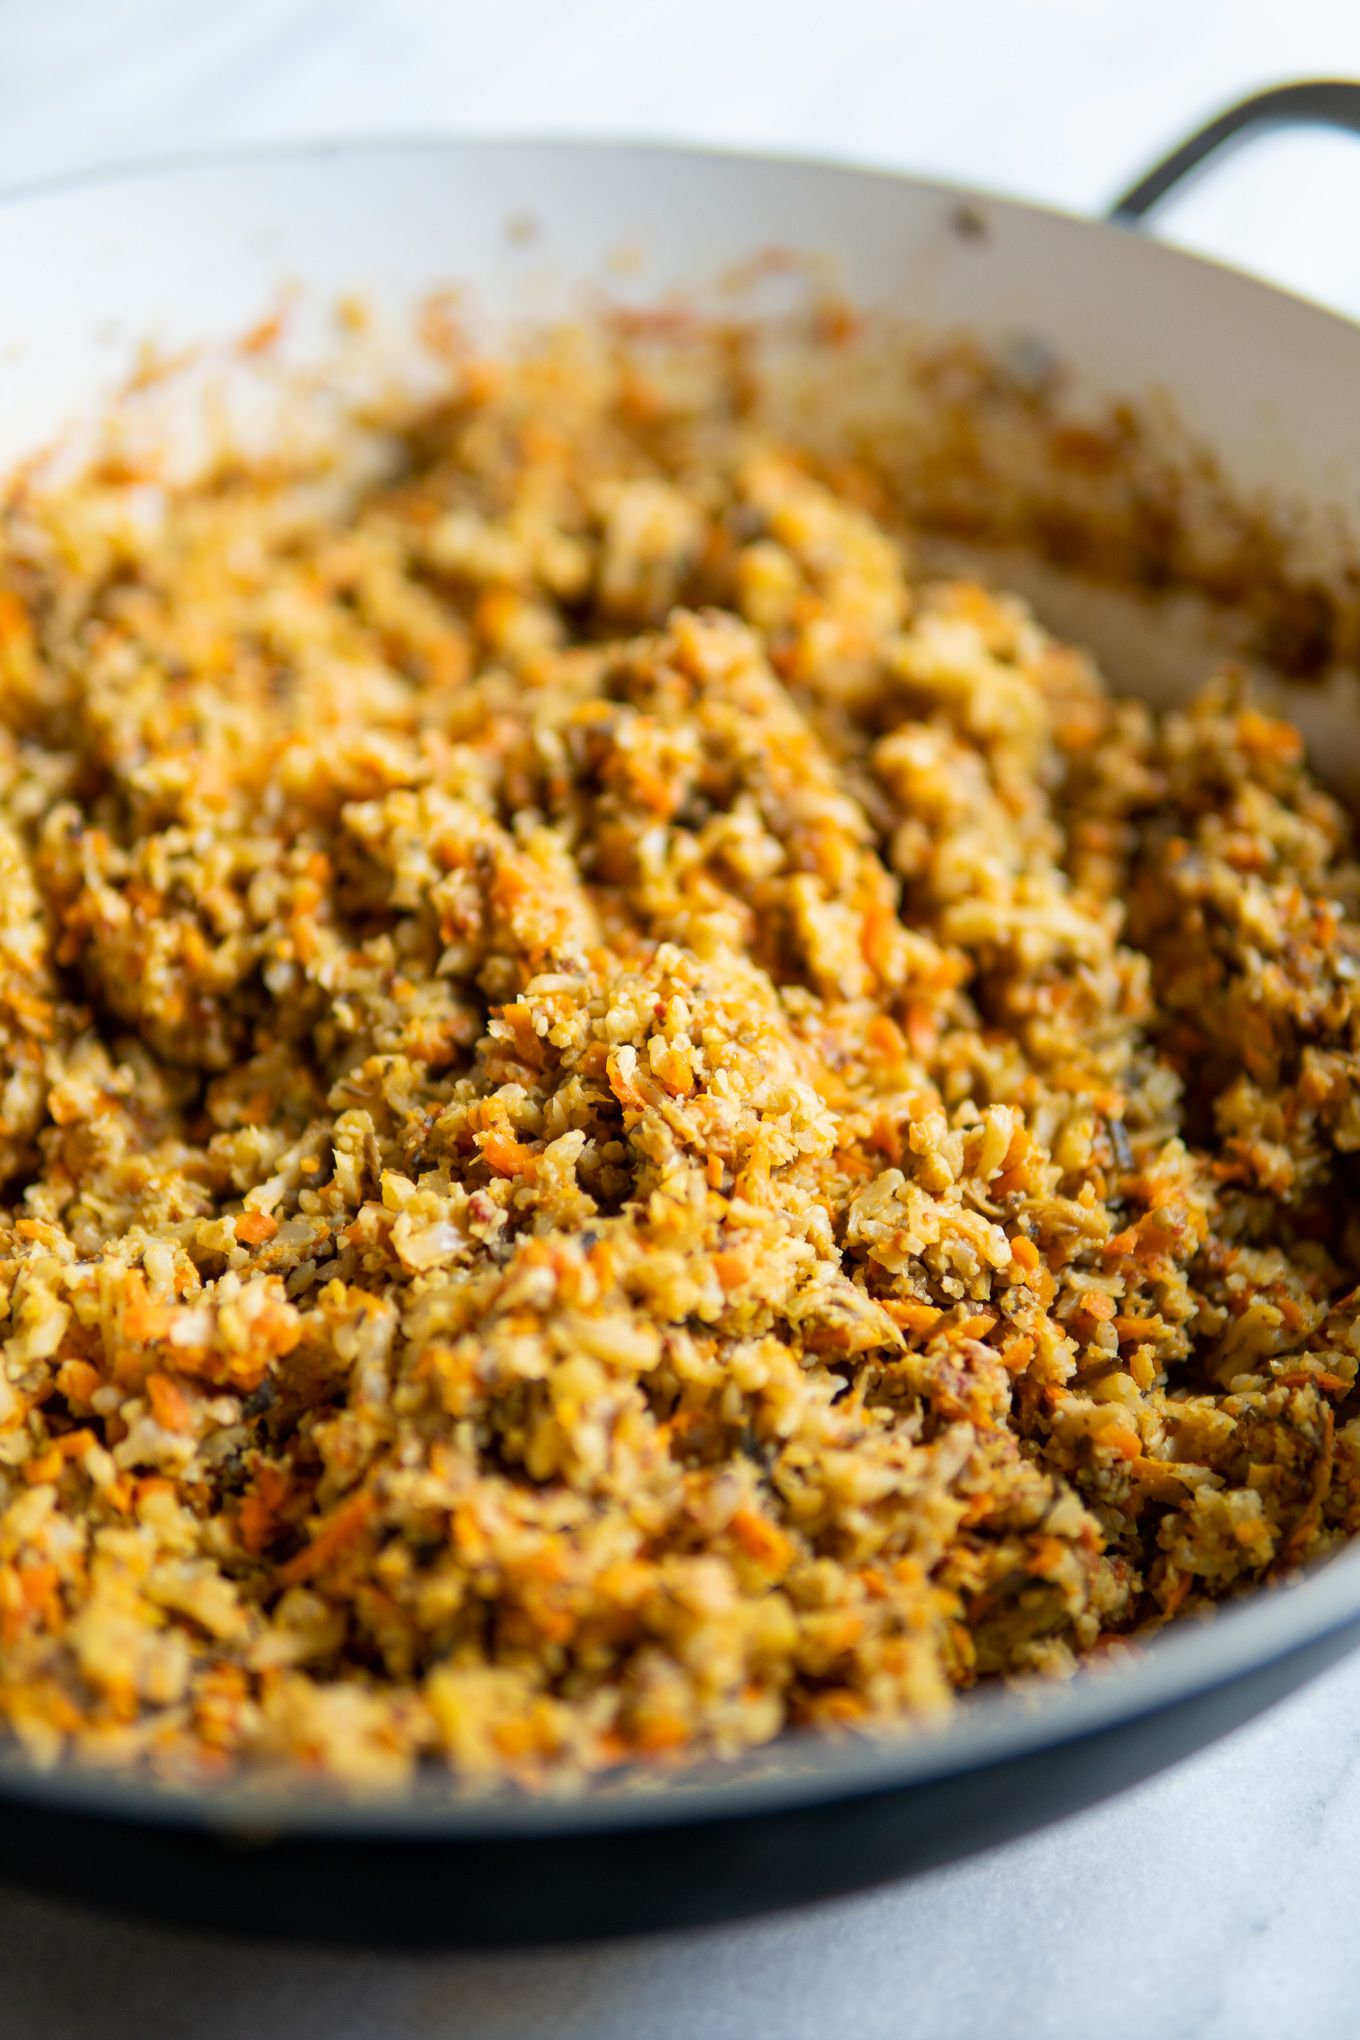 This Vegan Ground Beef Can Be Used In So Many Dishes Vegan Tacos Spaghetti Sauce Vegan Meatloaf Vegan Ground Beef Vegan Meat Substitutes Whole Food Recipes